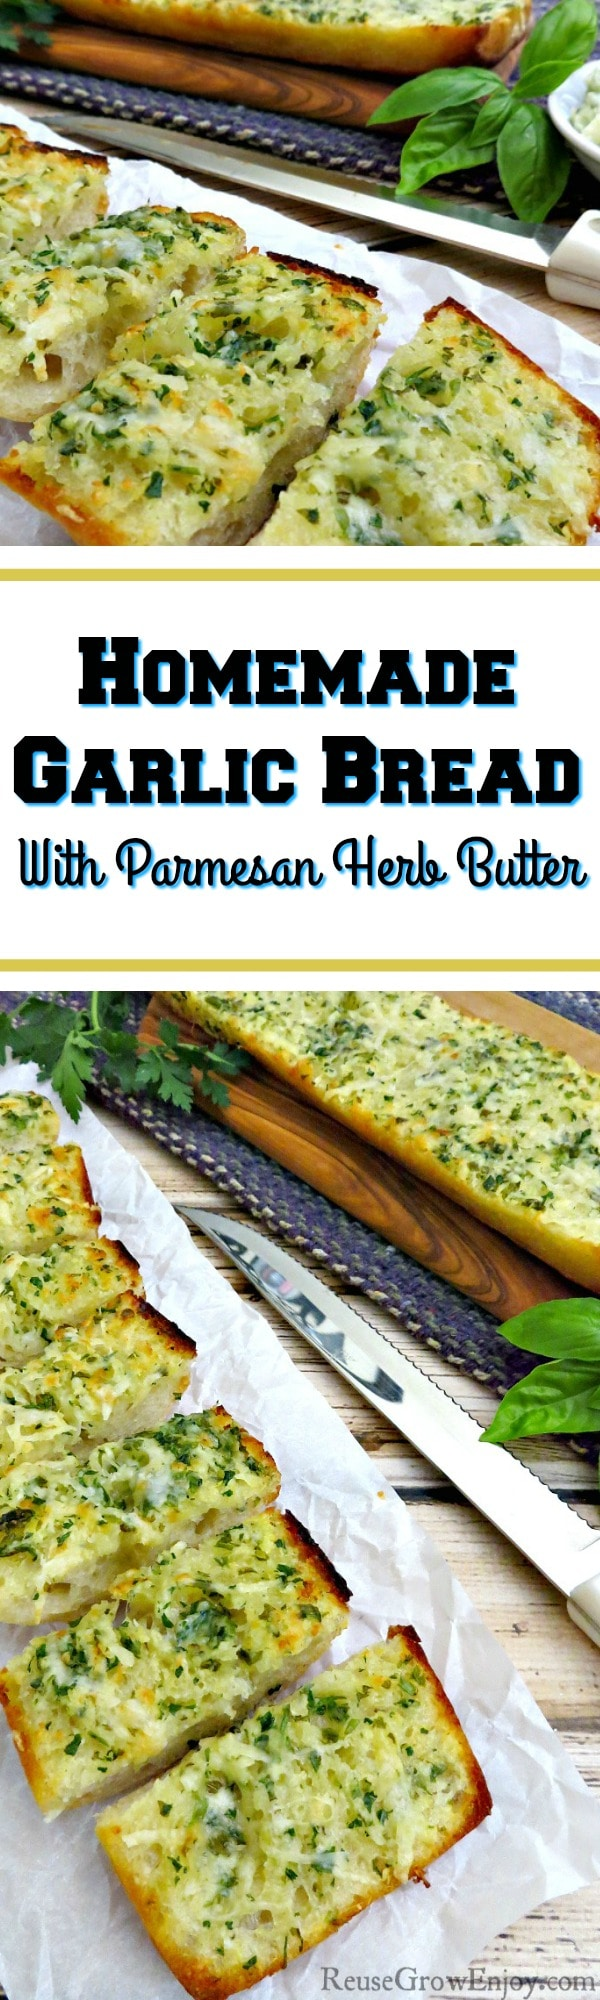 Love fresh garlic bread? Check out this recipe for homemade garlic bread with parmesan herb butter. It is so easy to make and sure to be a family favorite!